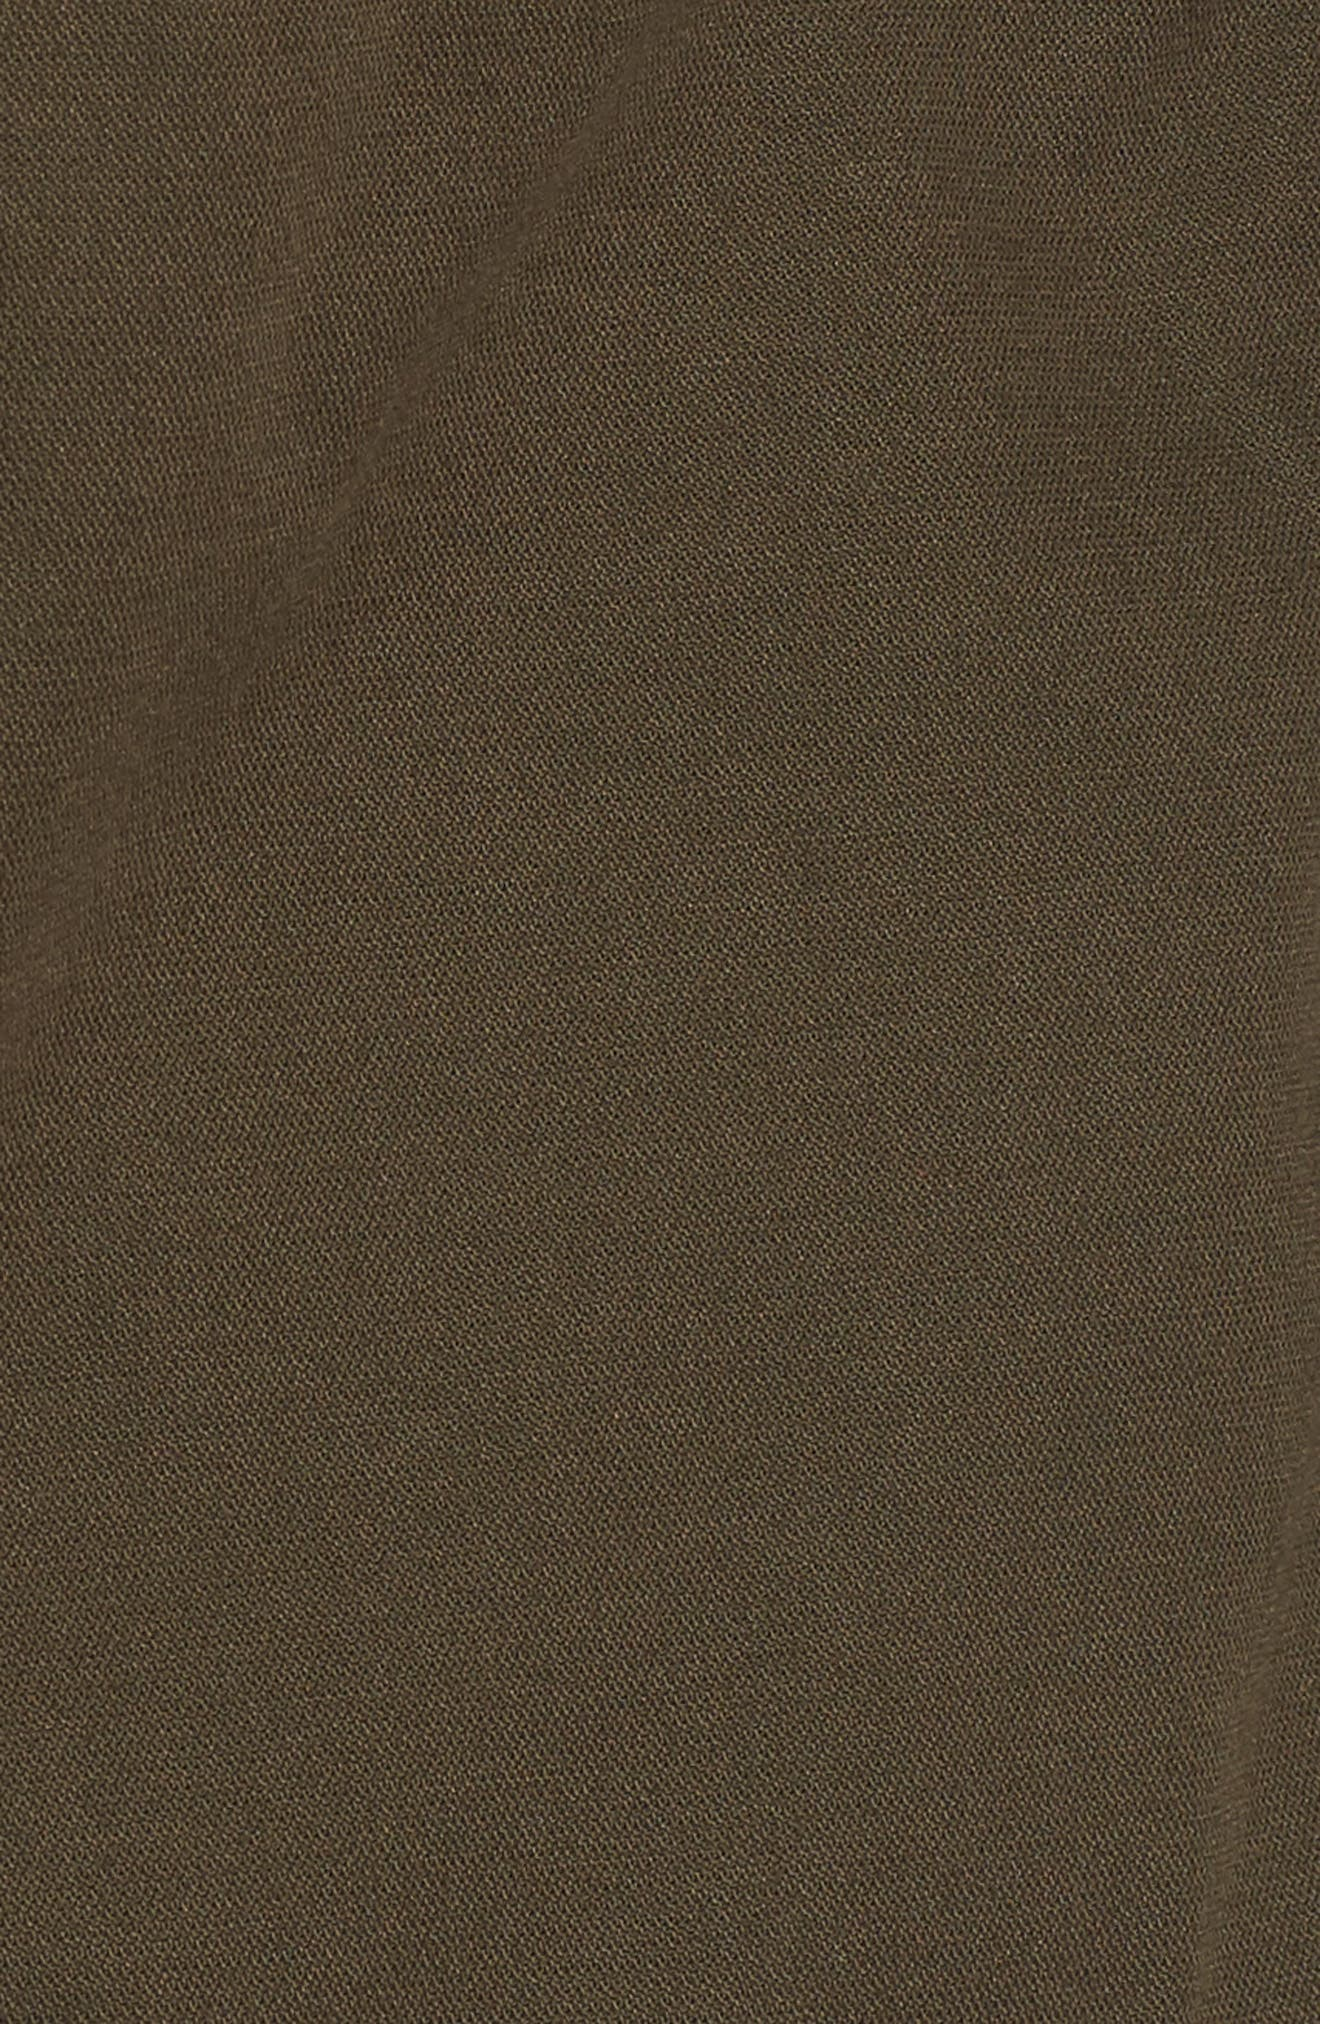 Utility Jacket,                             Alternate thumbnail 6, color,                             New Taupe Green